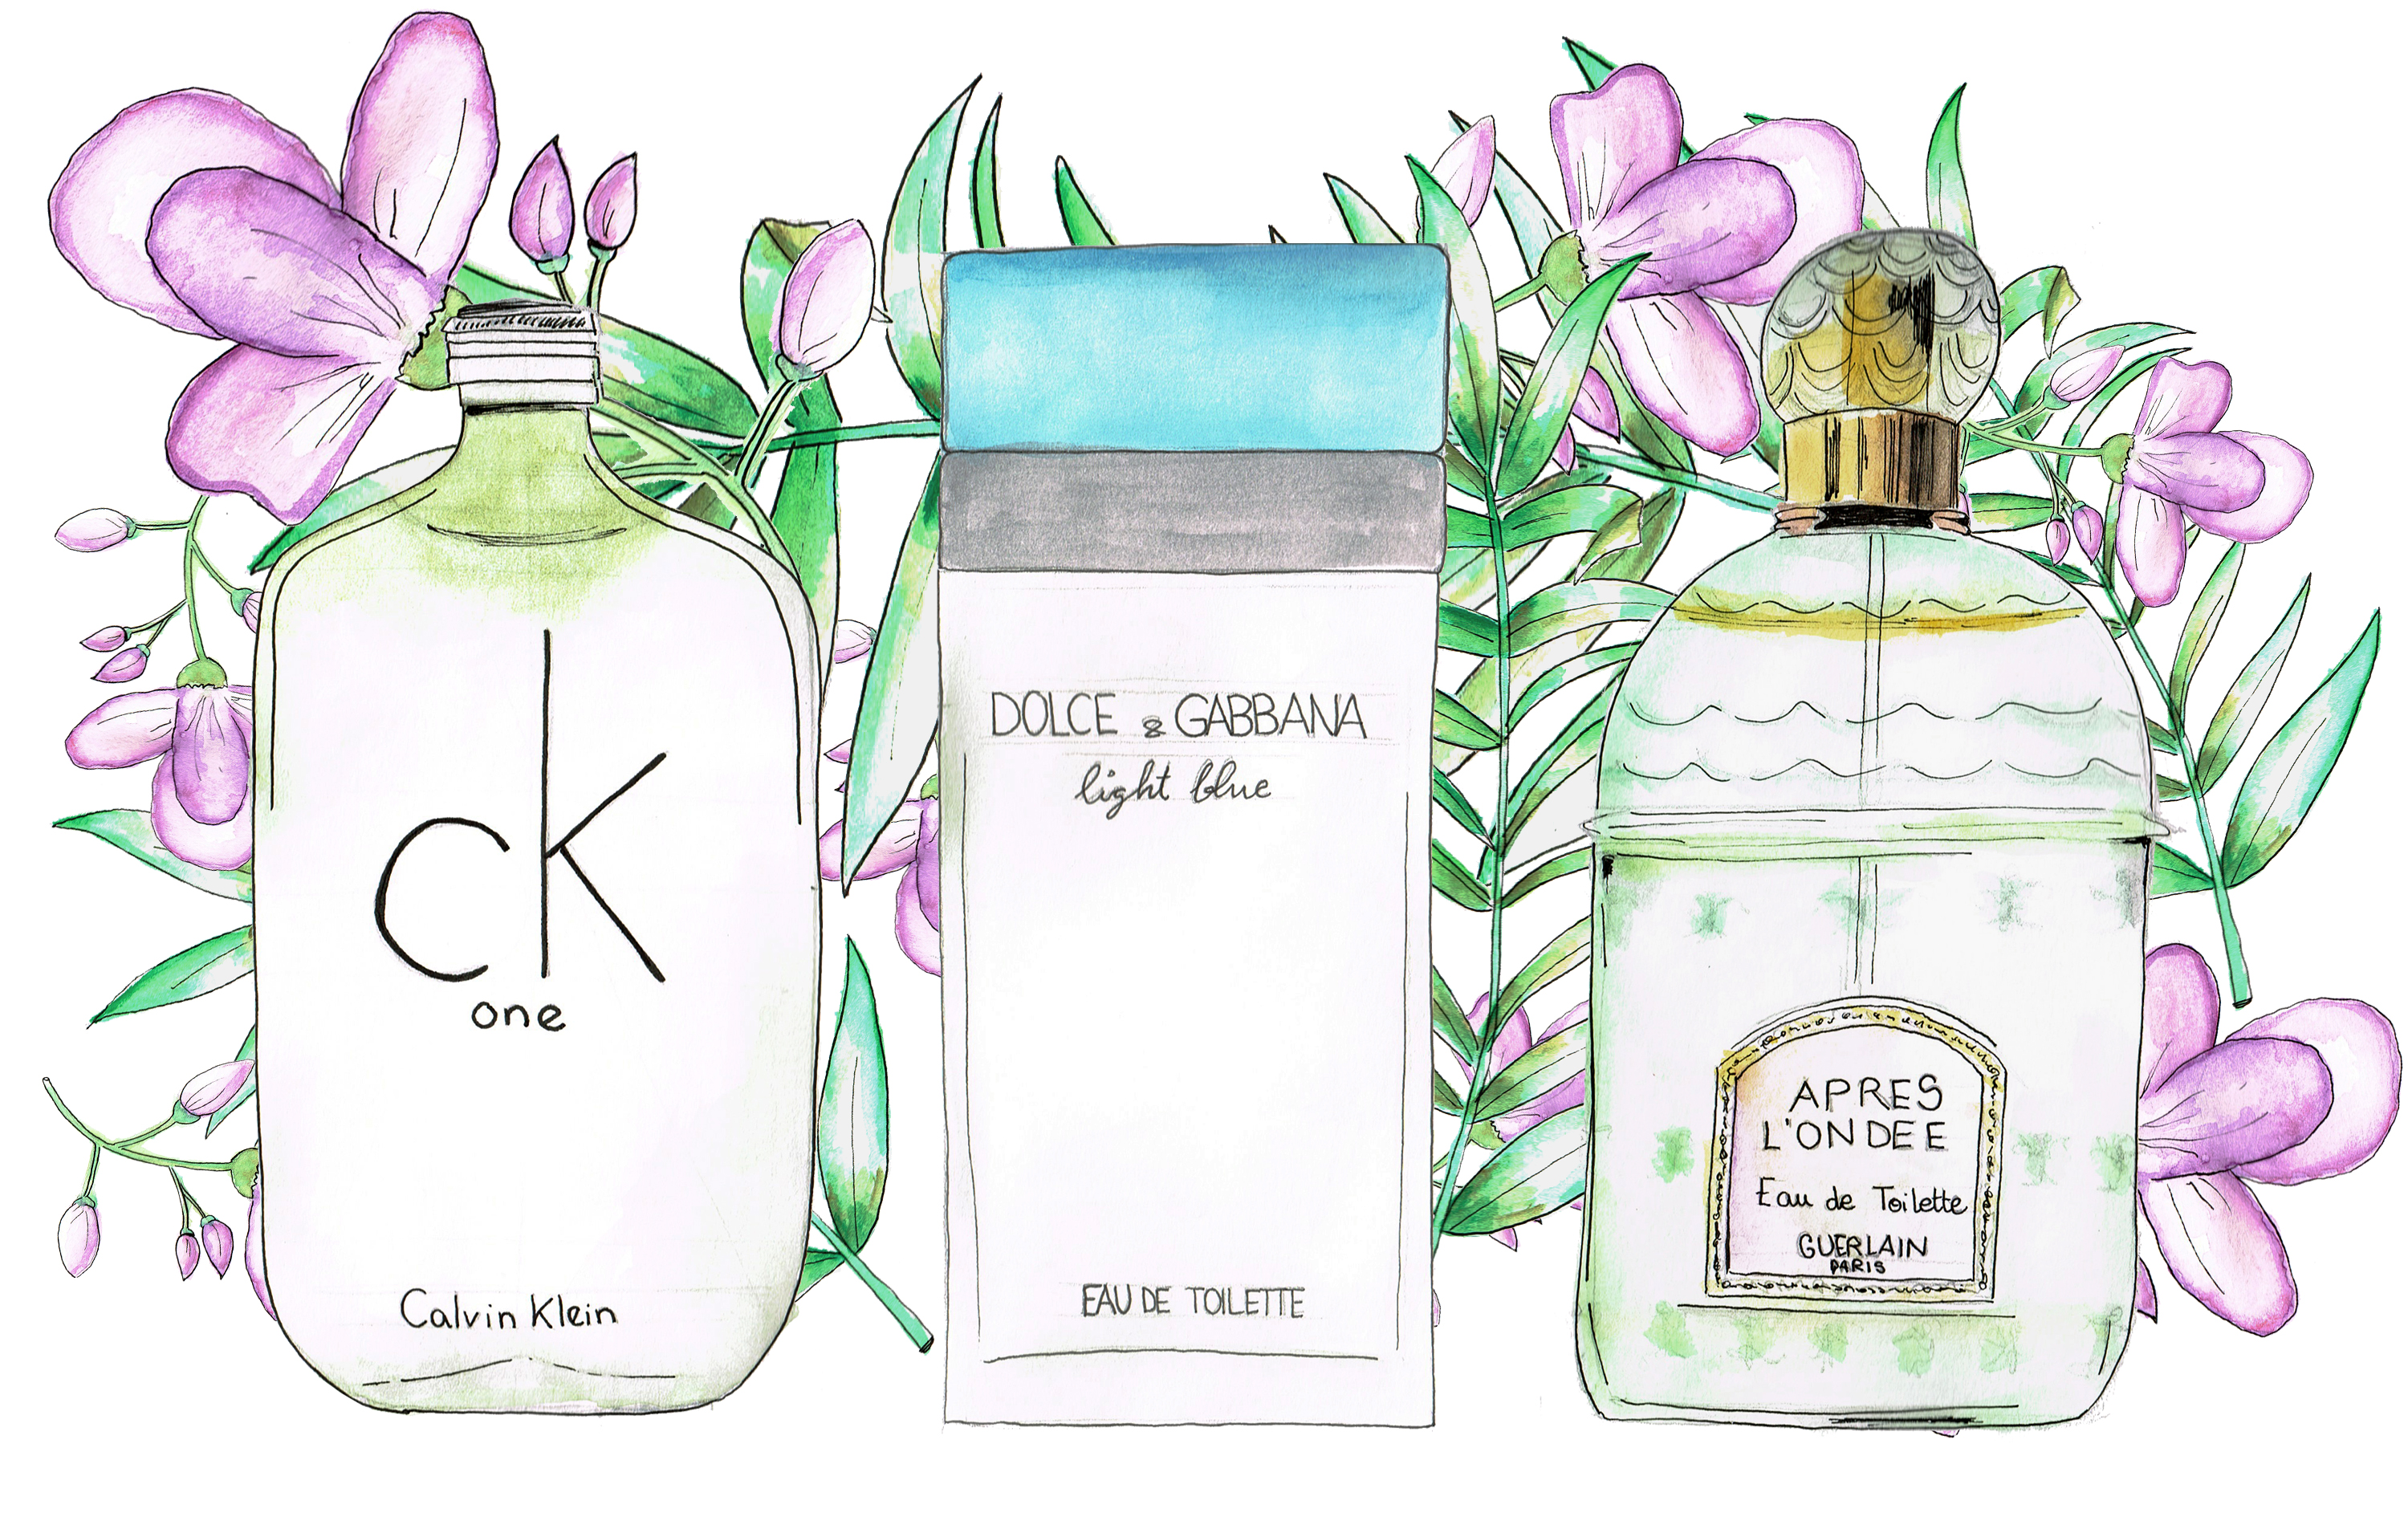 fashion illustration accessories perfumes iconic 10 famous essences watercolor, valencia fashion blogger somethingfashion, fashionillustration handmade buy prints, shalimar guerlain dolce gabbana chanel n5